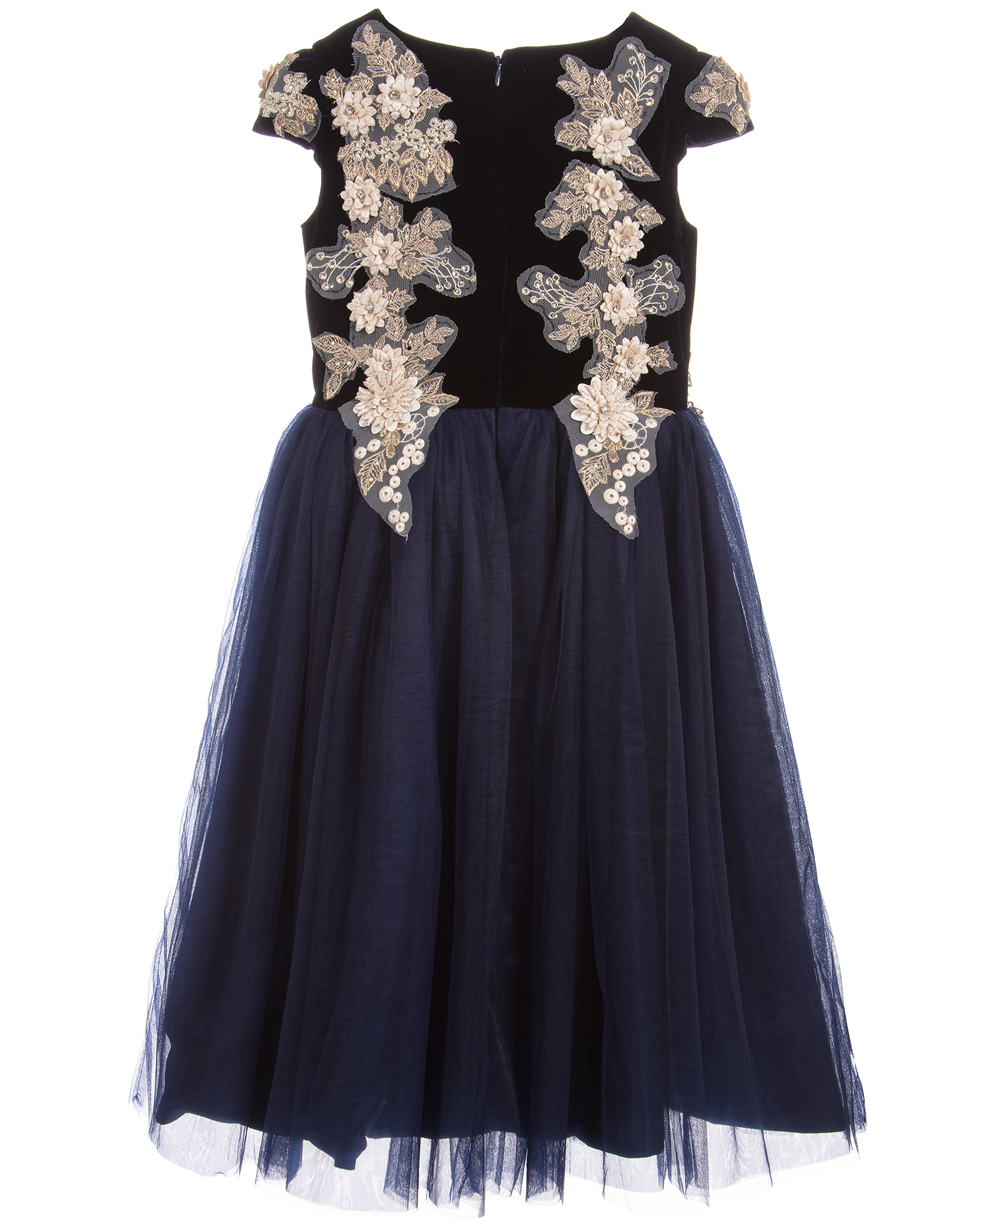 Blue Lace Maxi Dress Evening Gown Formal Wear